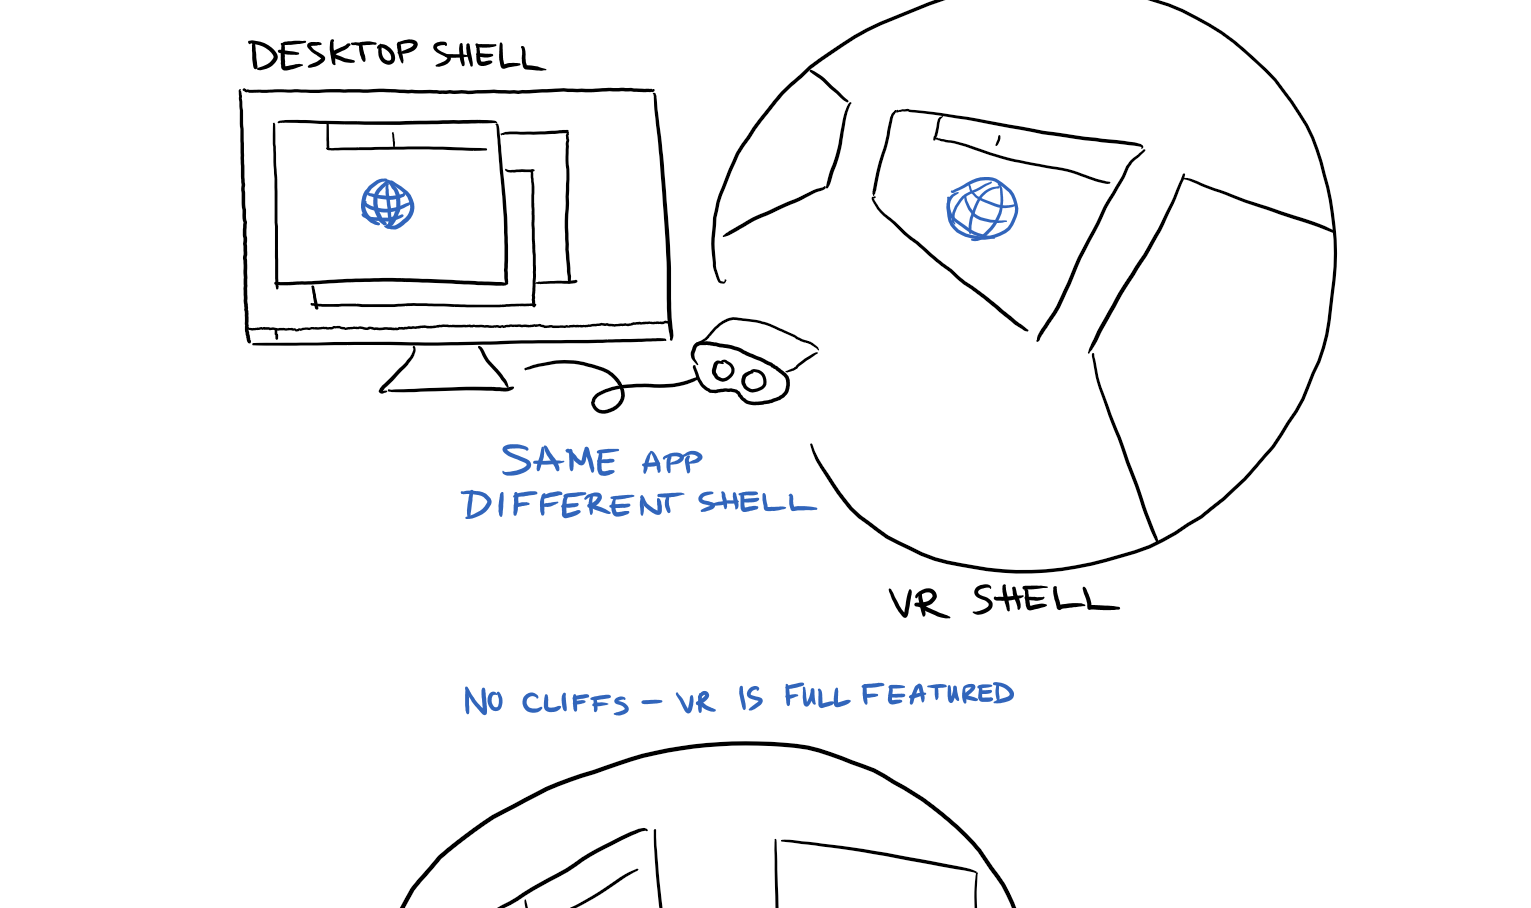 Sketch of desktop and VR shell